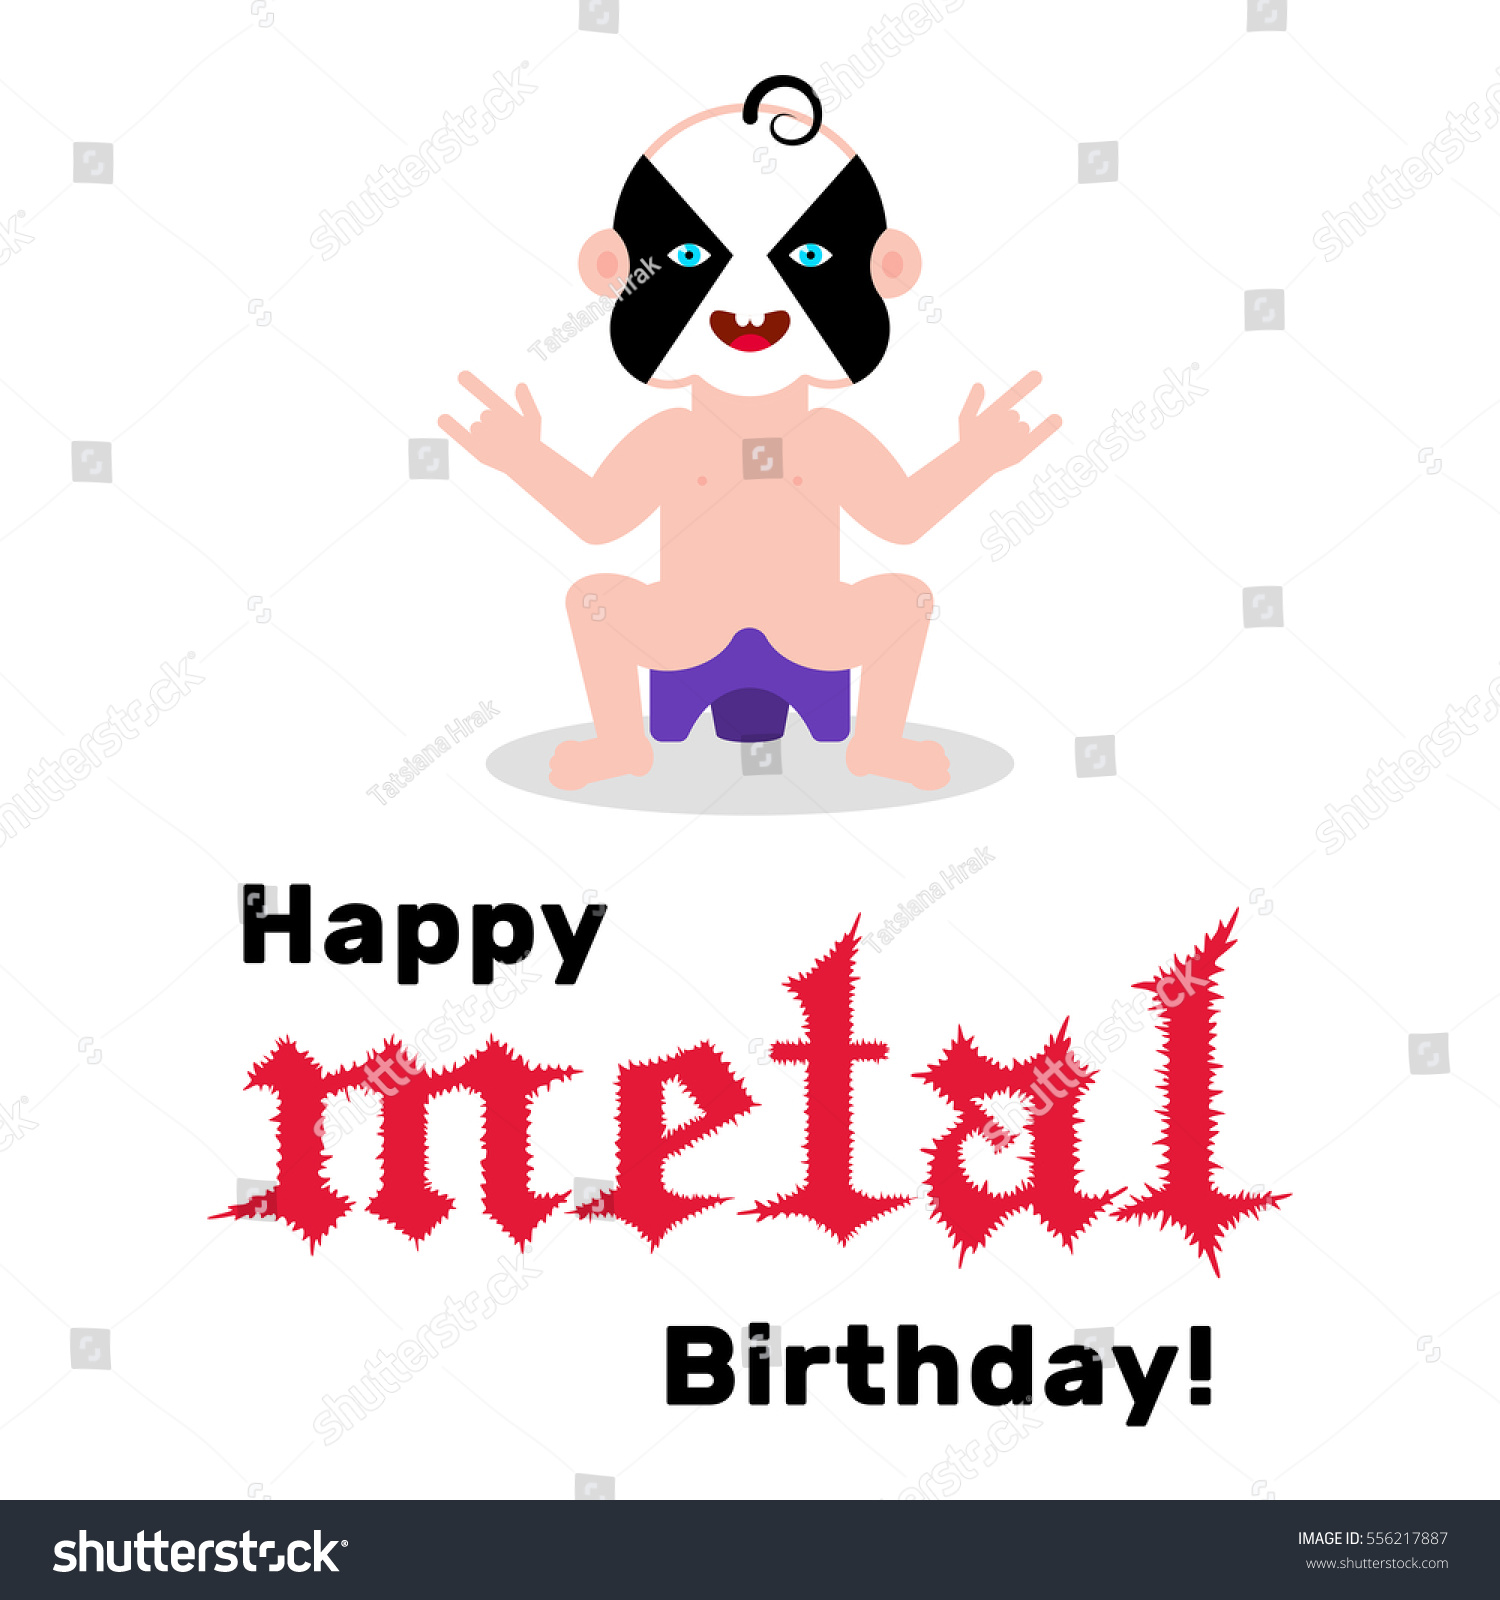 Funny Birthday Card Baby With Black Metal Corpse Paint And Horn Hand Gesture Sitting On